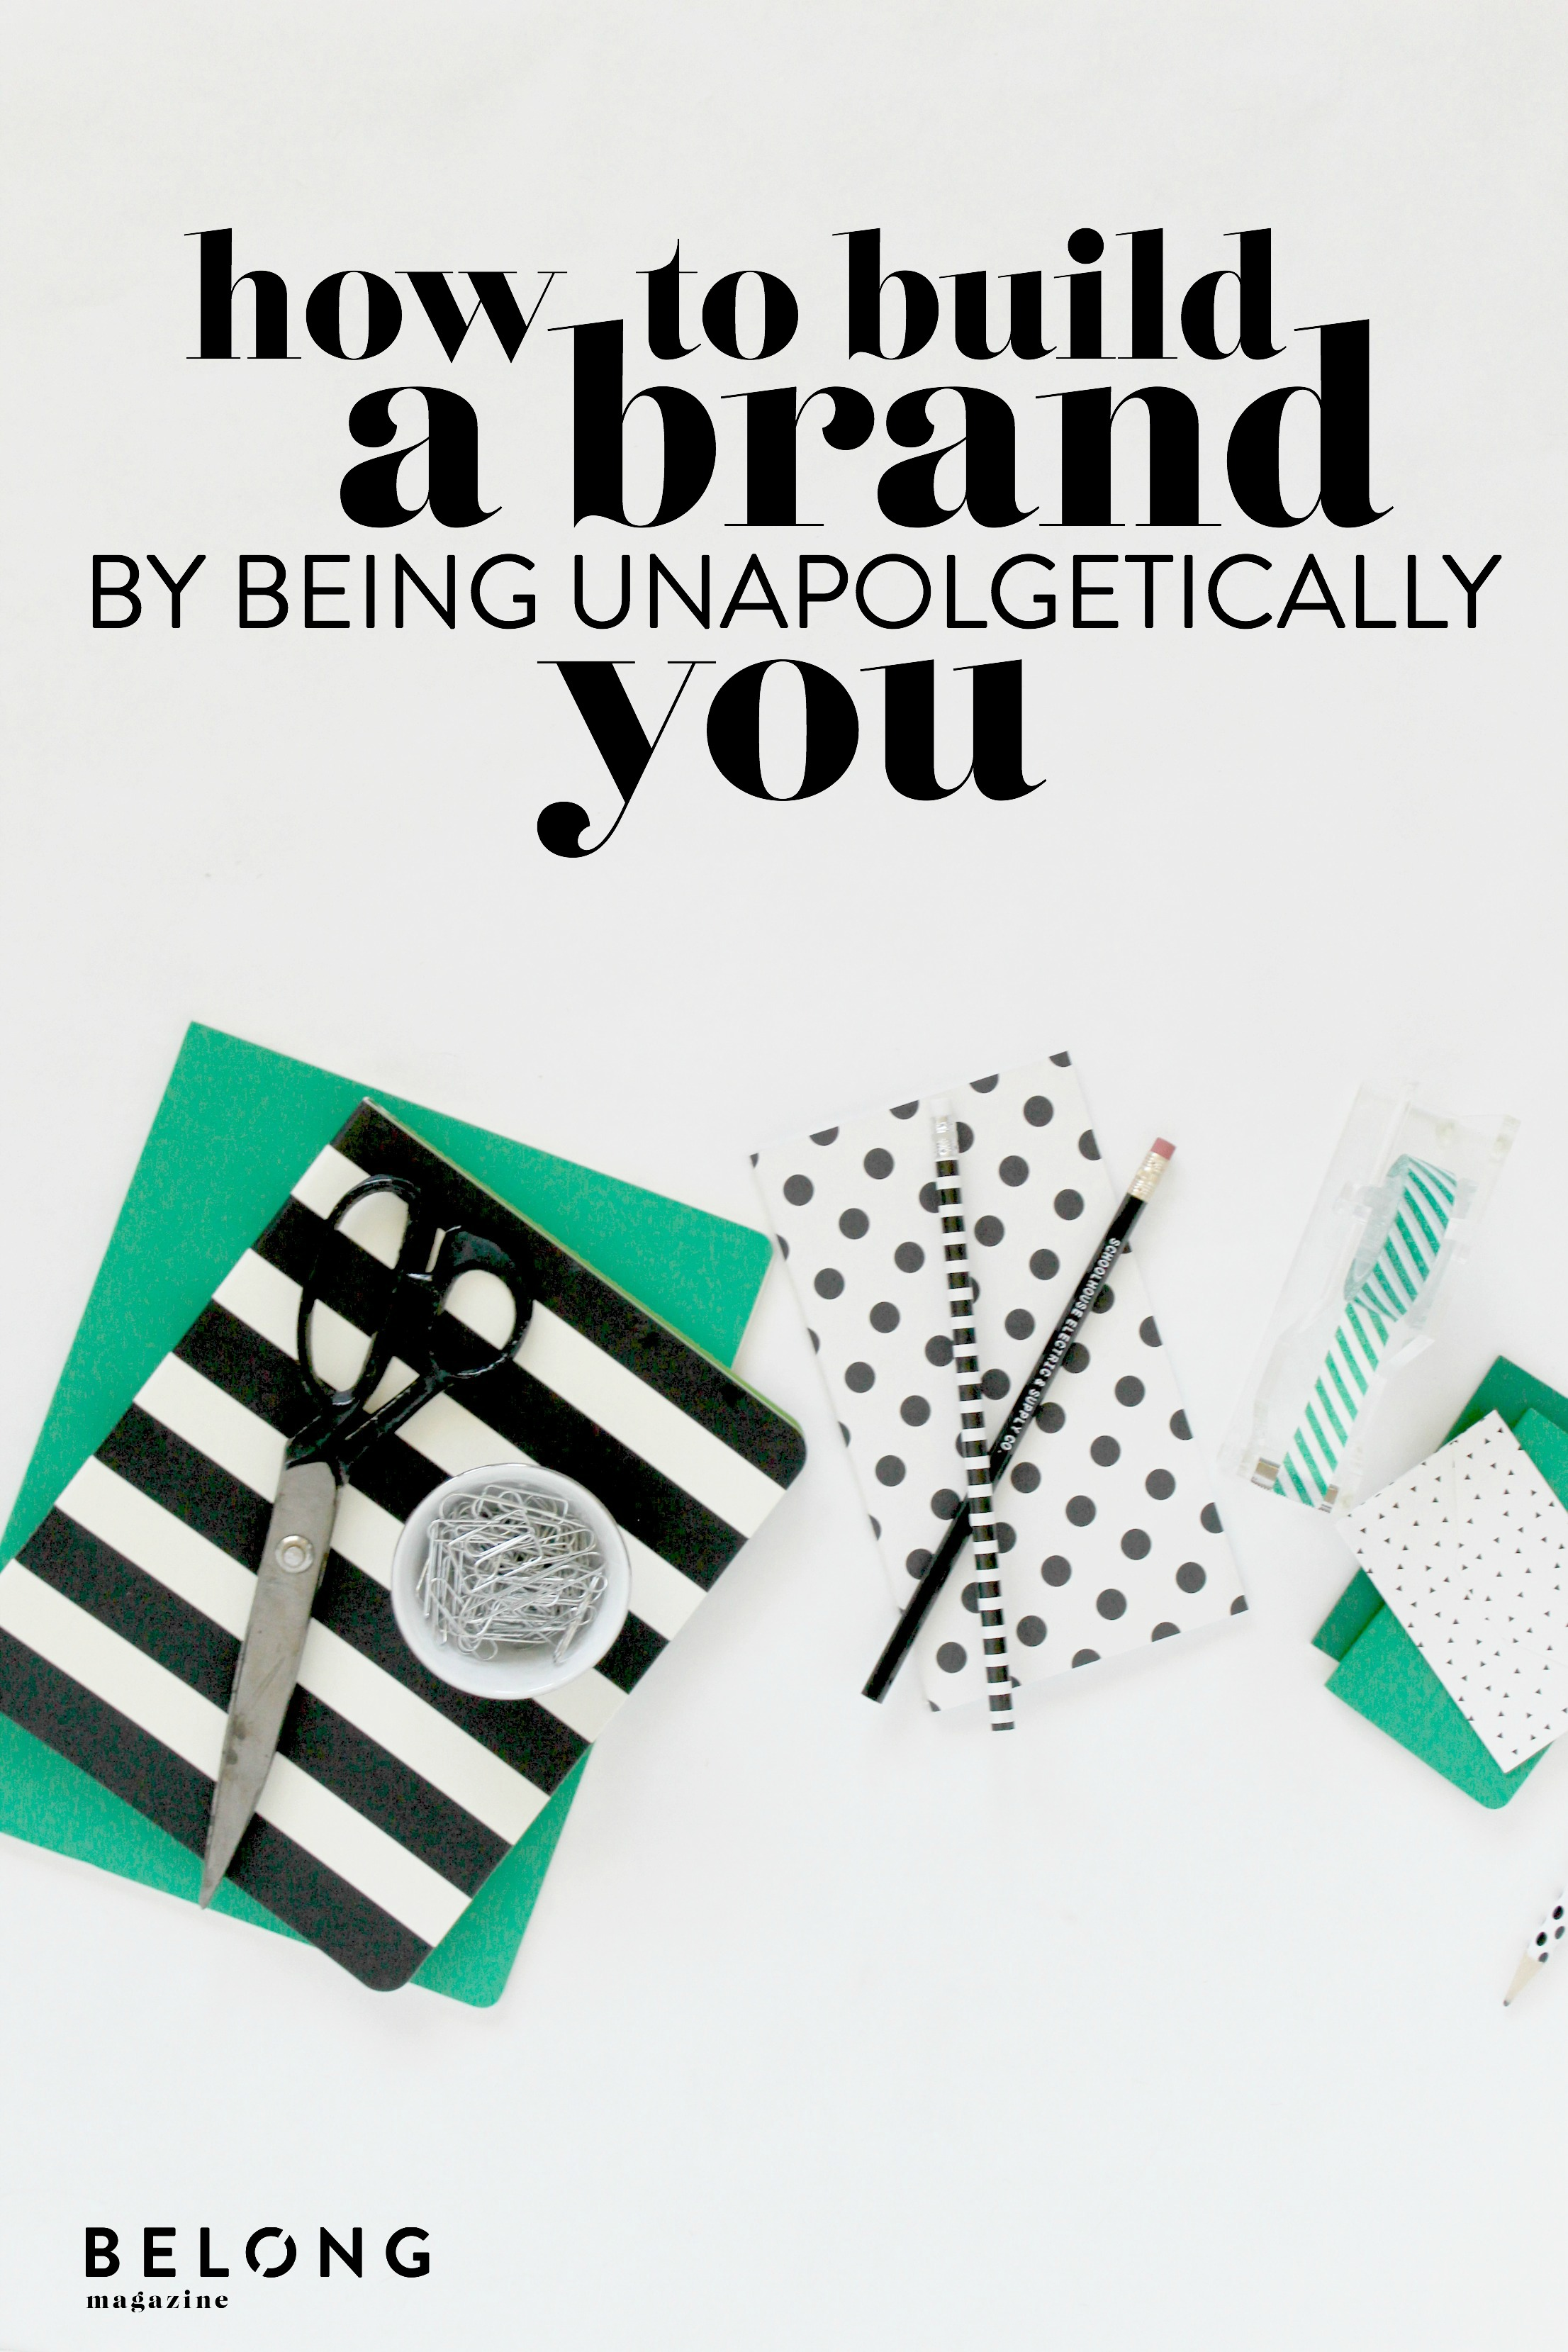 how to build a brand by being unapologetically you with Nicke Minder of @page261 as featured on the Belong Magazine blog - celebrating the art and community of blogging, social media, and entrepreneurship for women in business, creatives, and beyond